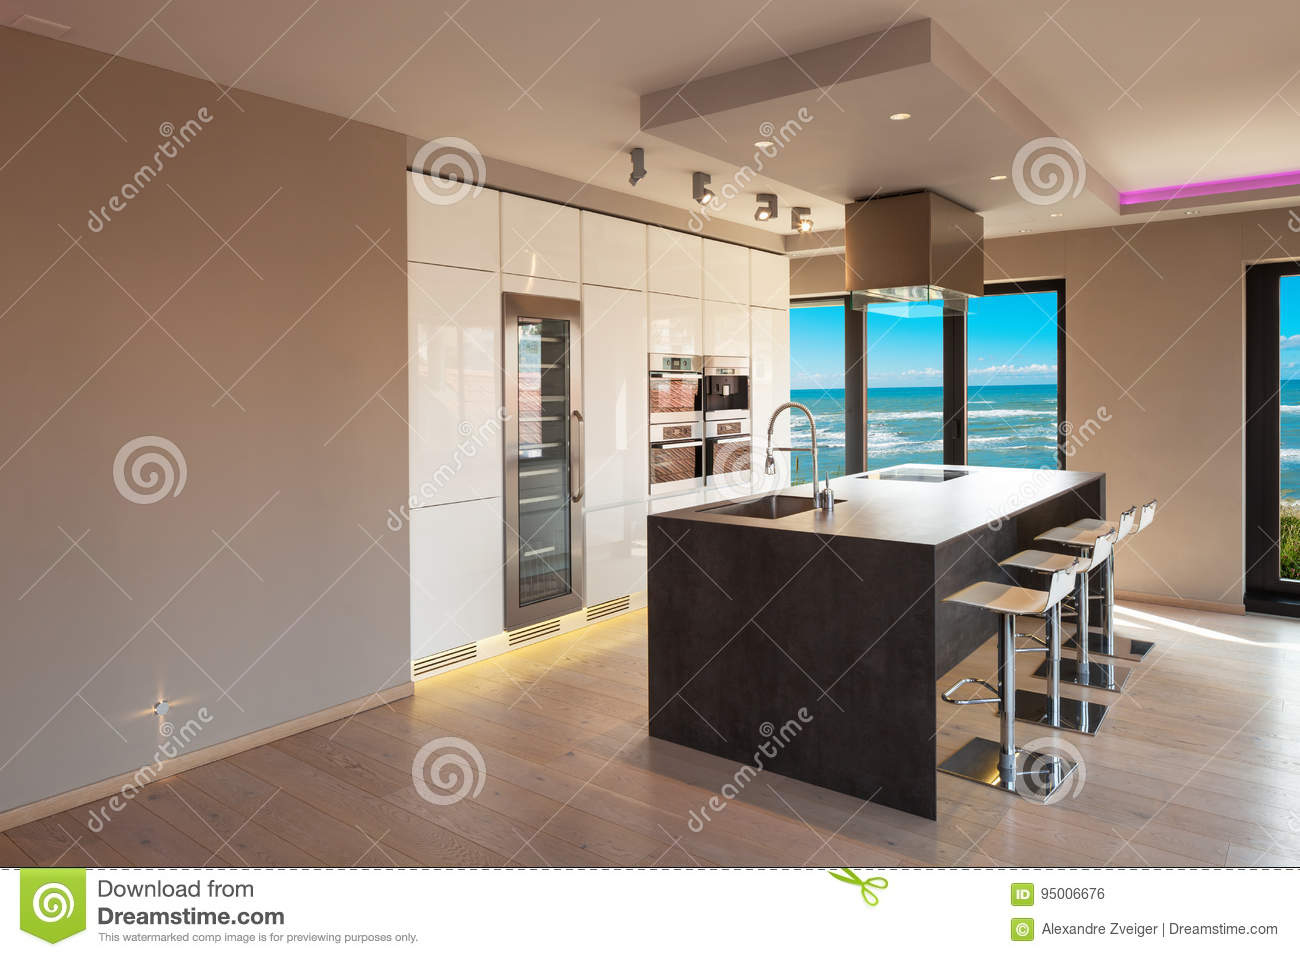 Interni Moderni Cucine : Case moderne interni cucine awesome case moderne interni idee e